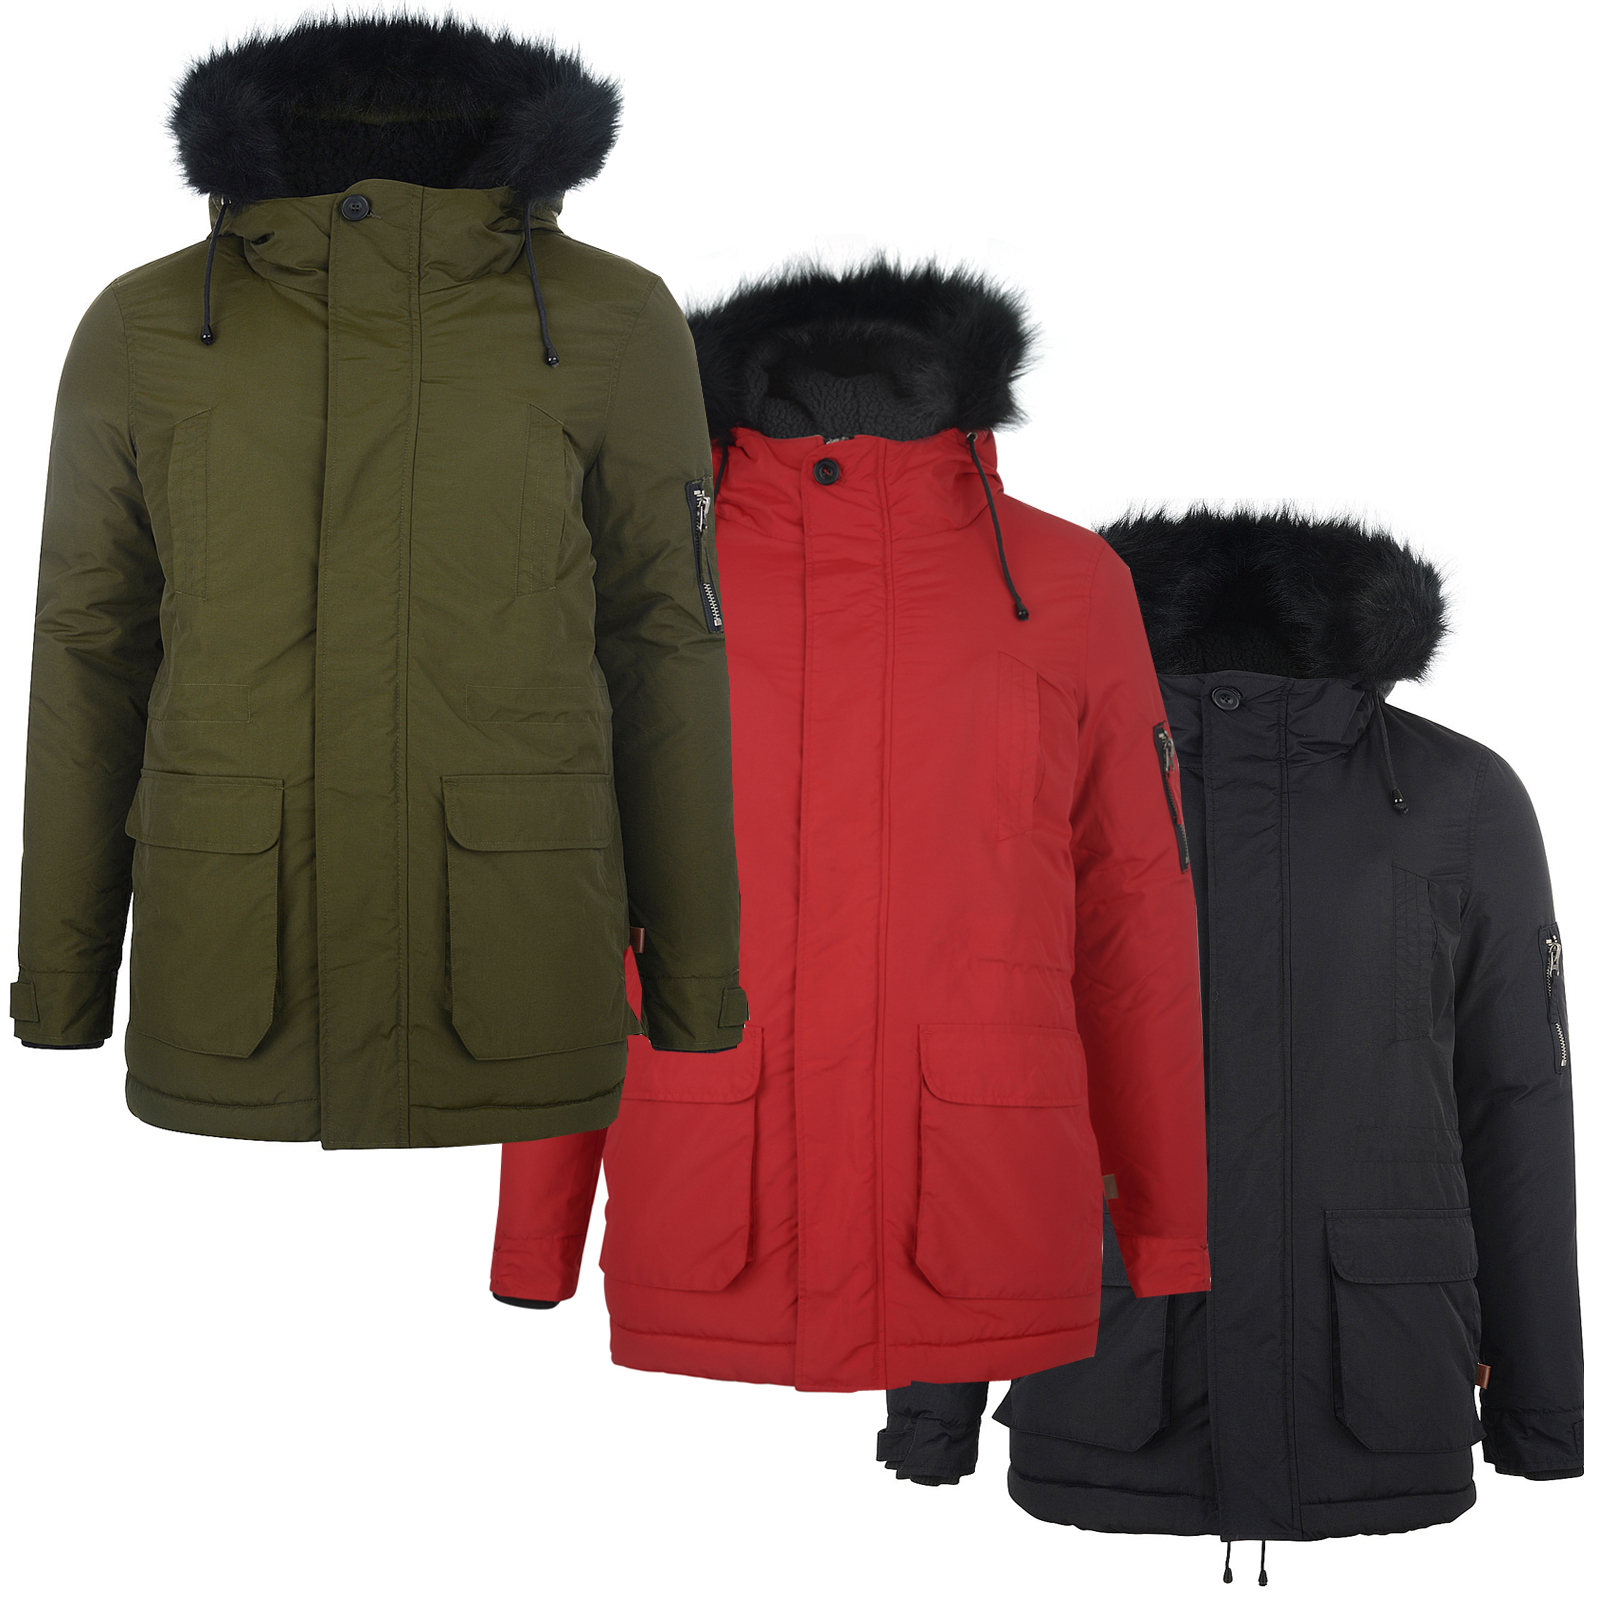 Our clearance jackets are a good way to get a warm coat at a deep discount. Some of our clearance coats are on sale since we're discontinuing a color, or there were some minor issues during the production of a particular coat.